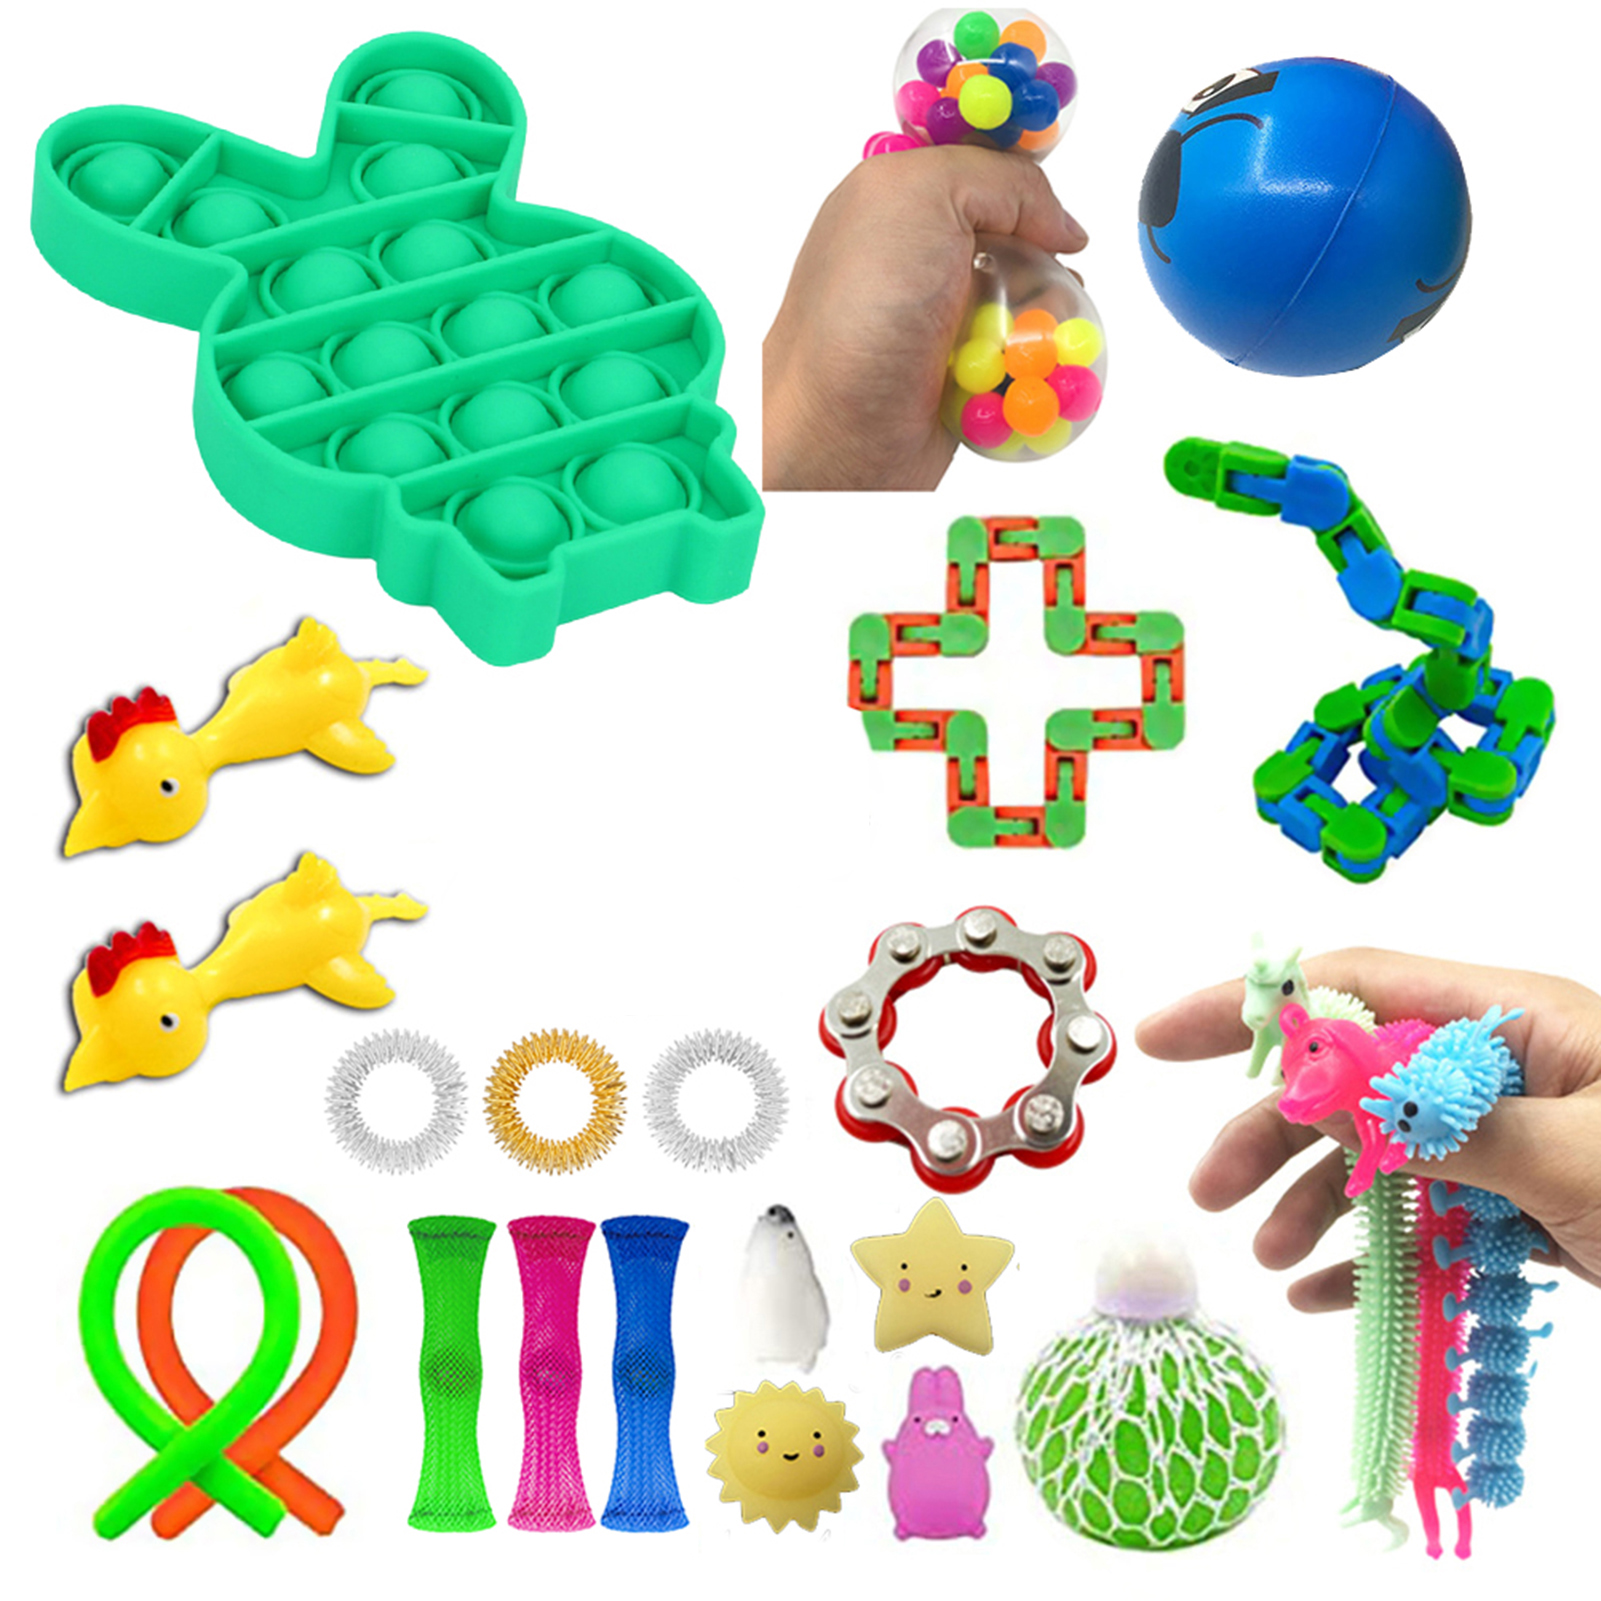 24 Pack Fidget Toys Set Anti Stress Autism Anxiety Relief Stress Squeeze Toys Fidget img3